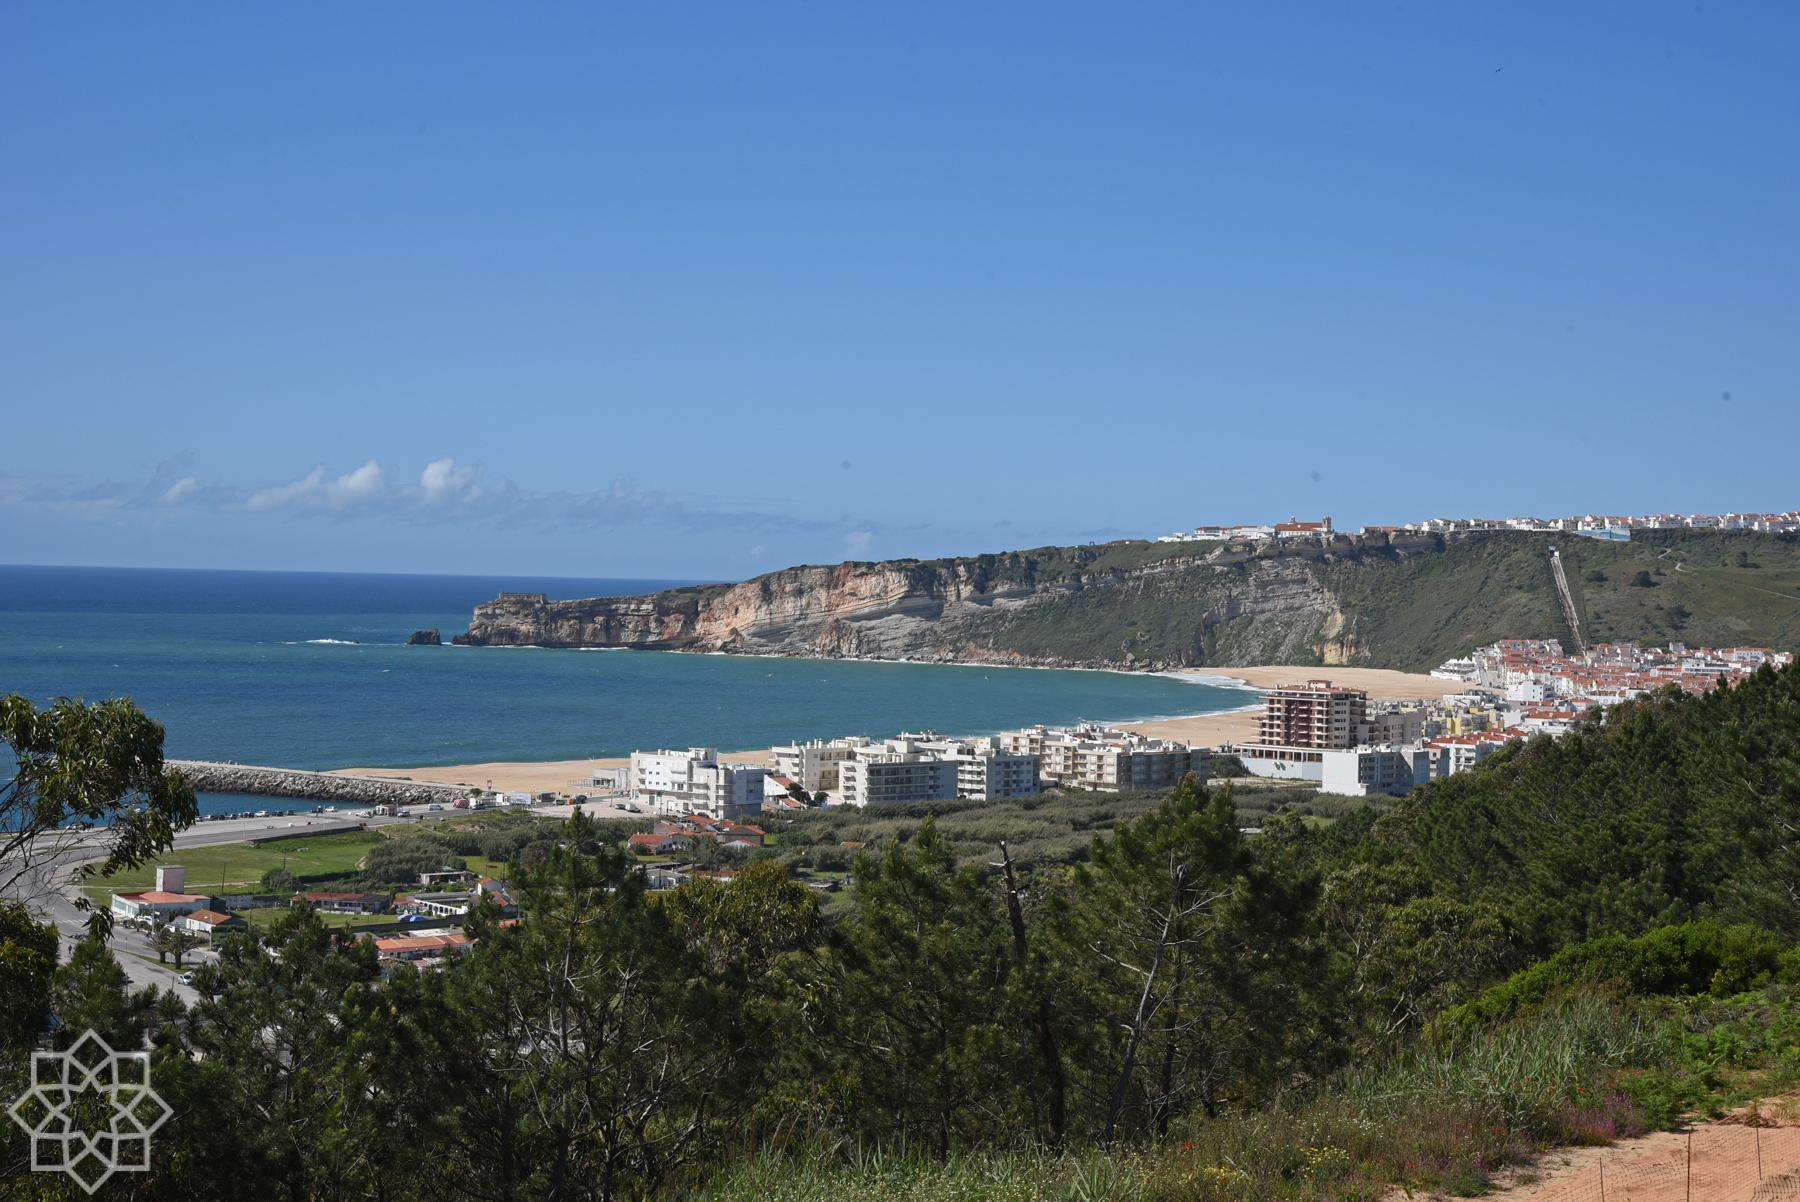 Nazaré city and the cliff with the funicular to Sítio